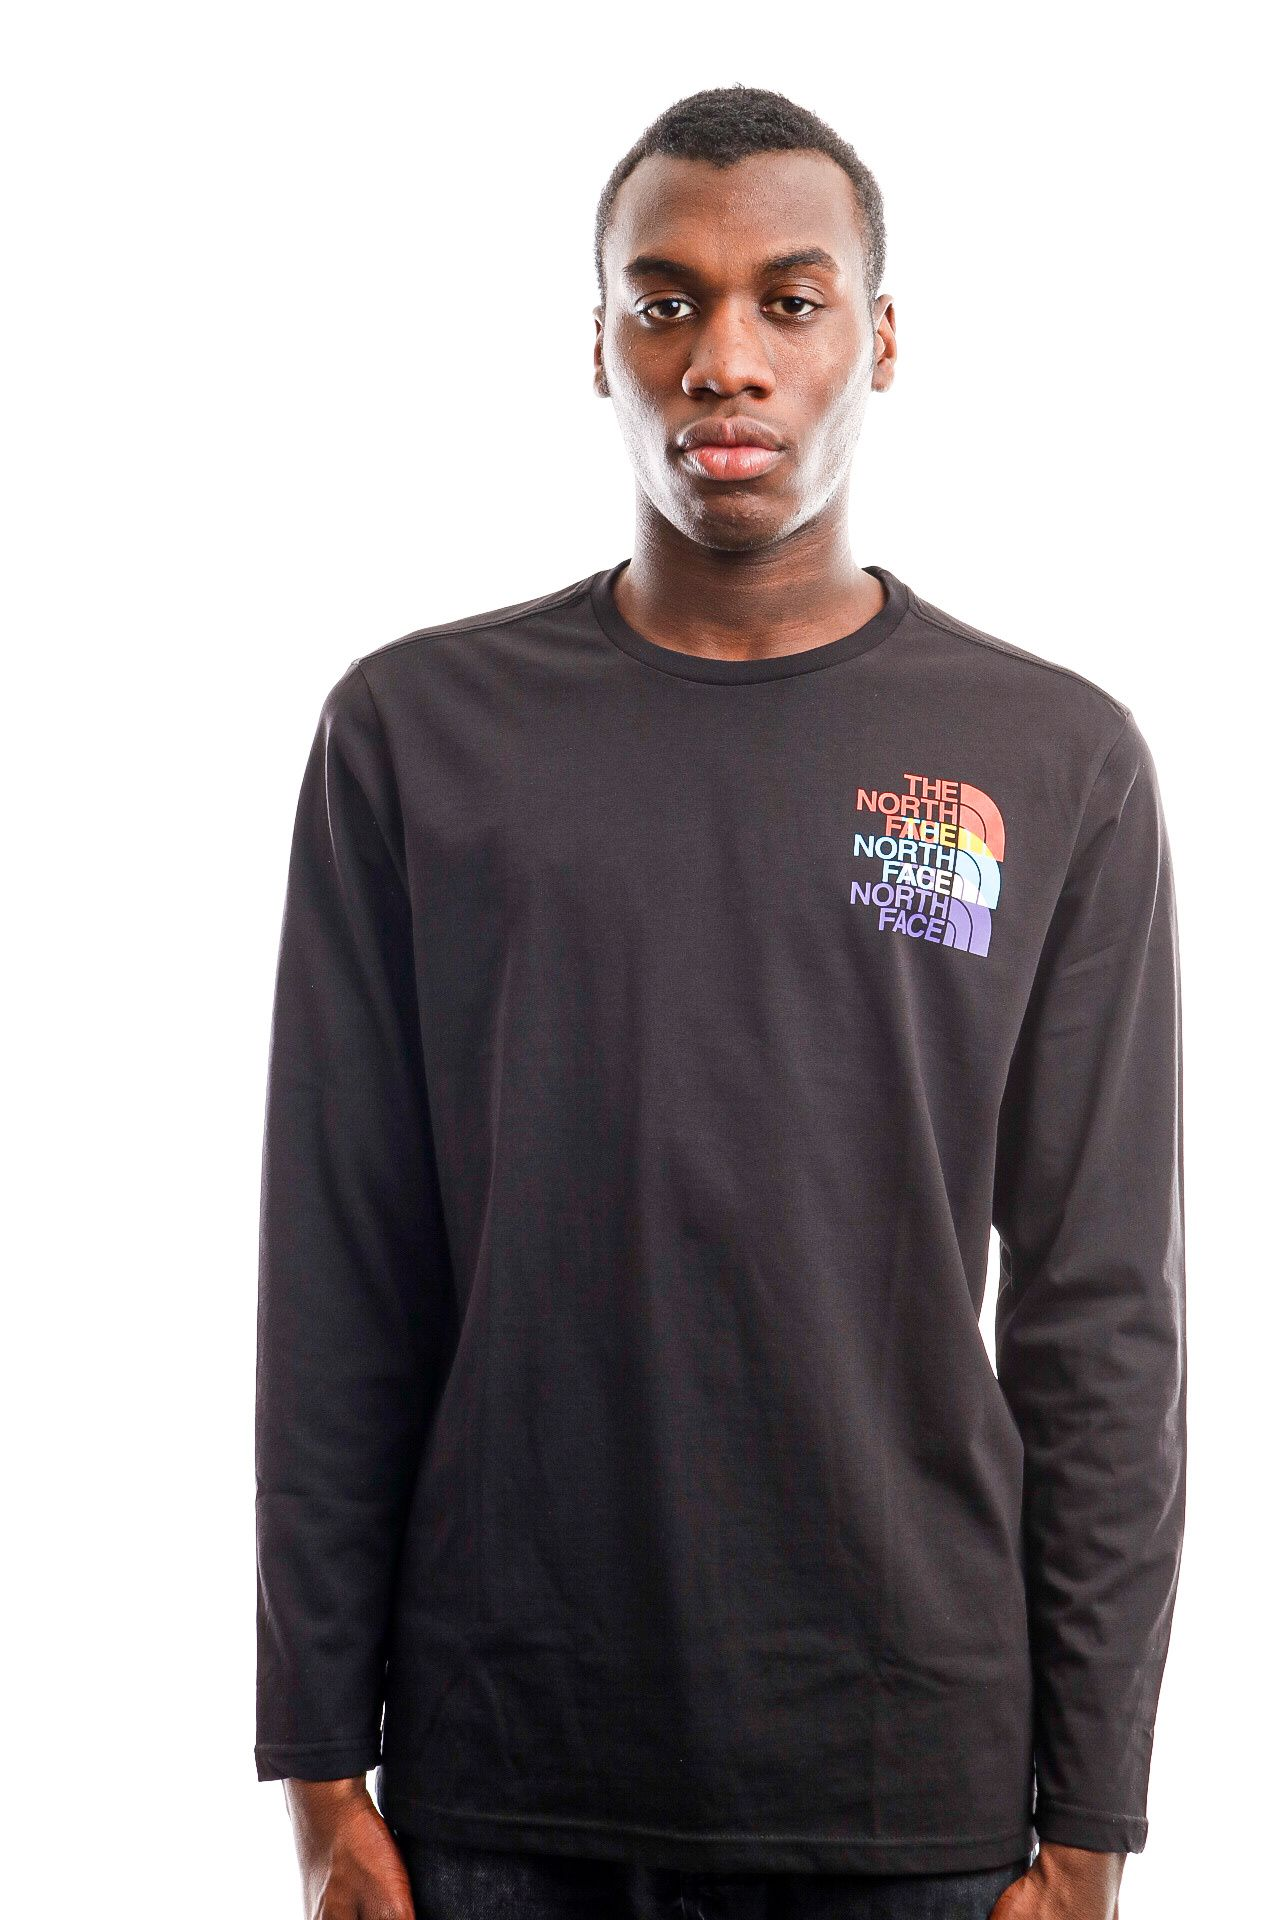 Afbeelding van The North Face Long Sleeve Men's LS Rgb Prism Tee Tnf Black NF0A4SYNJK31